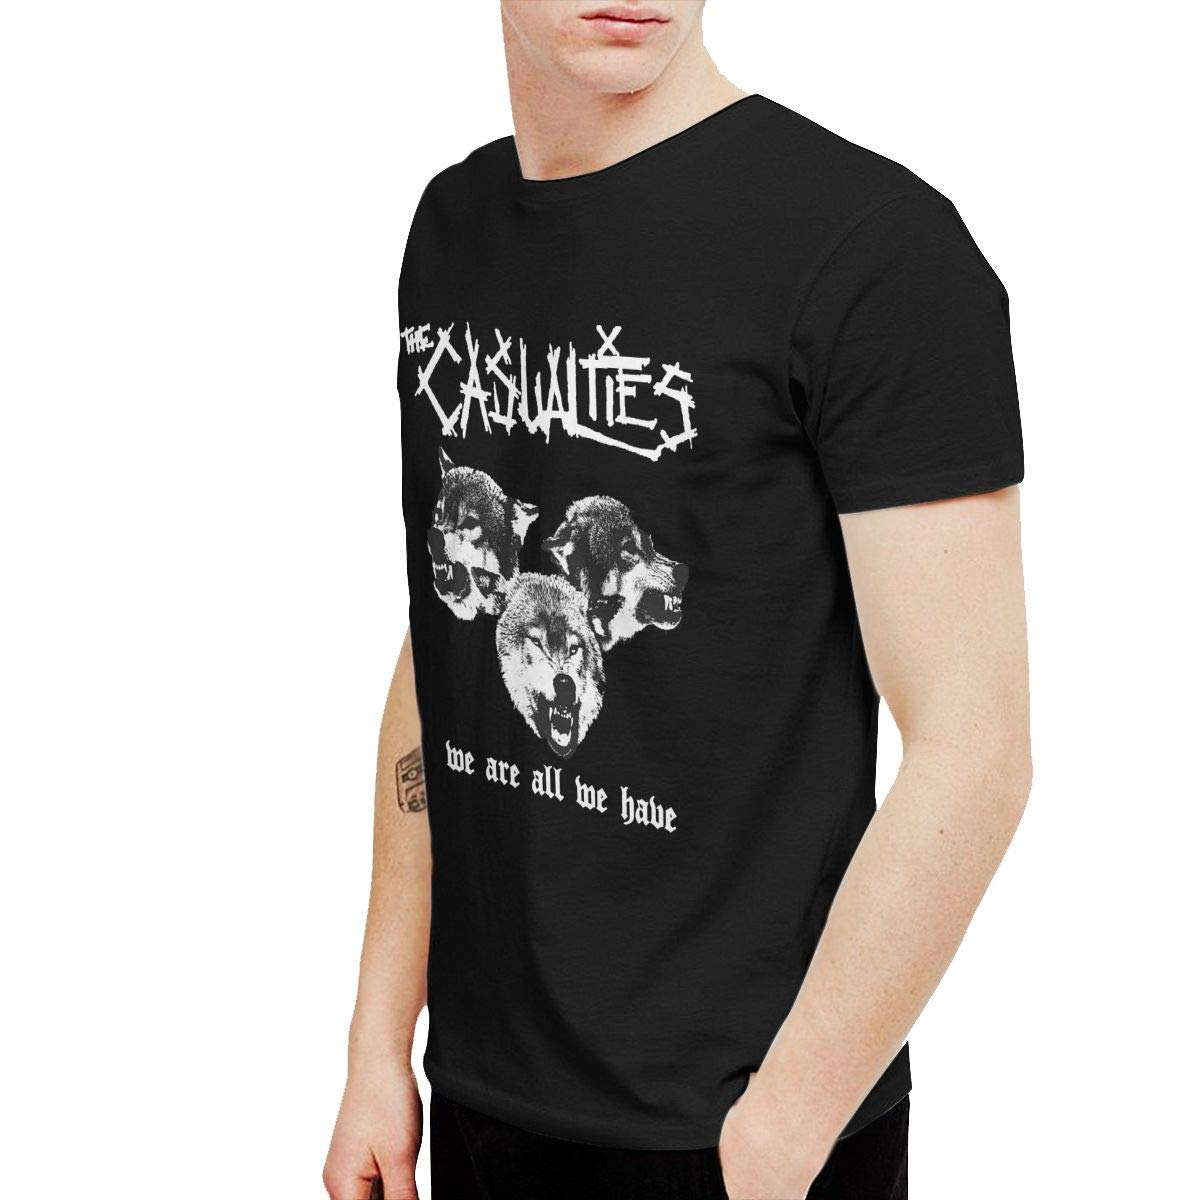 Rebecca-P Mens Classic The Casualties We are All We Have Tee and Washed Denim Hat Casquette Black